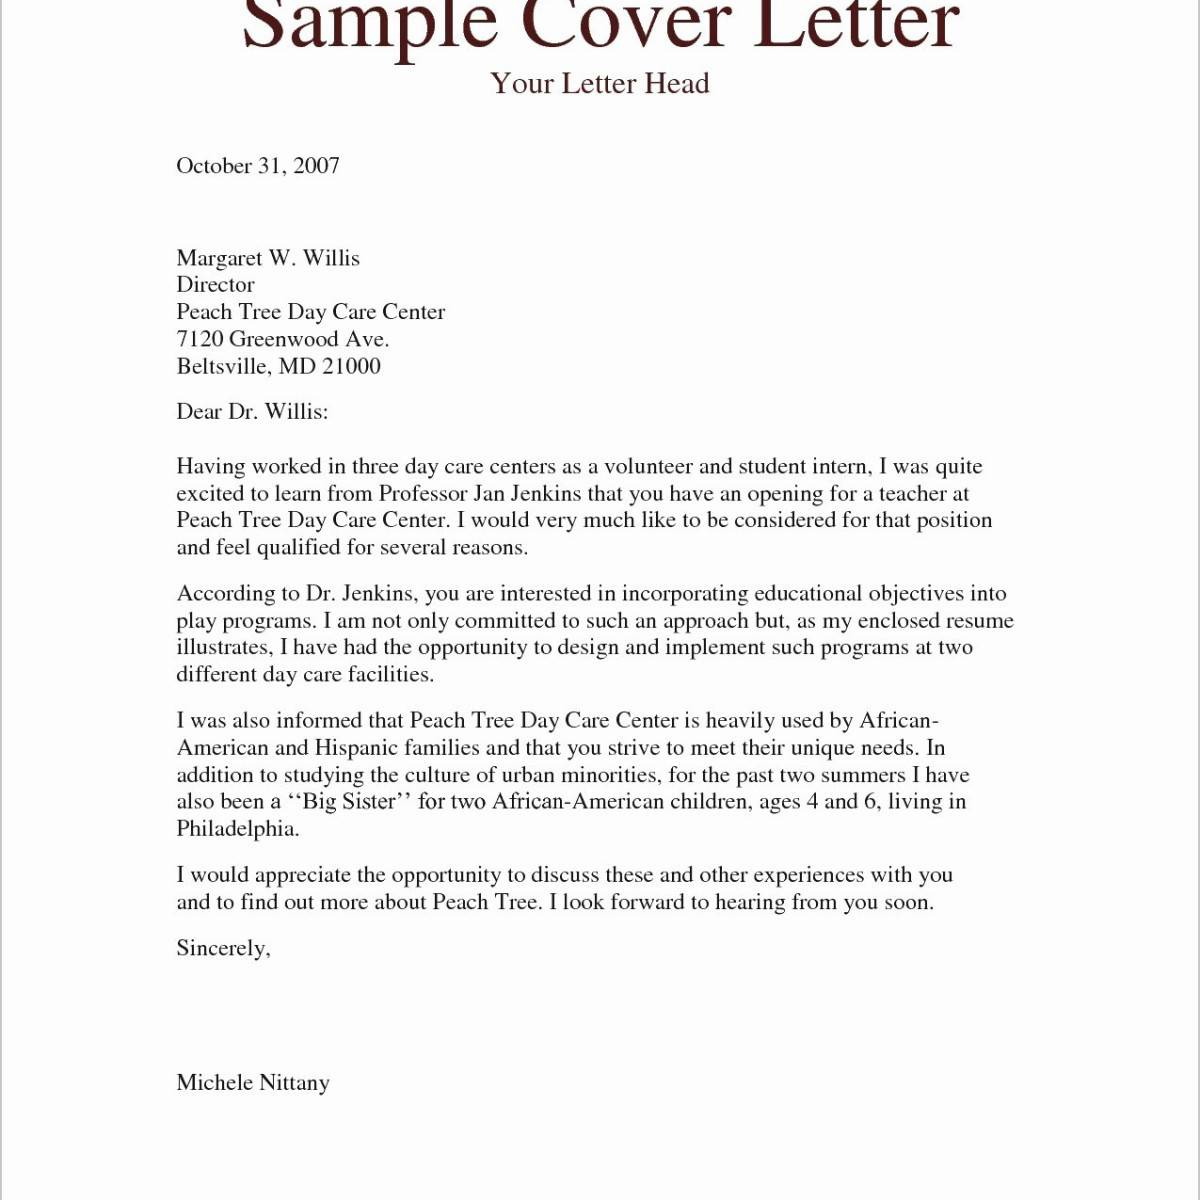 Personal Loan Application Letter Sample Pdf